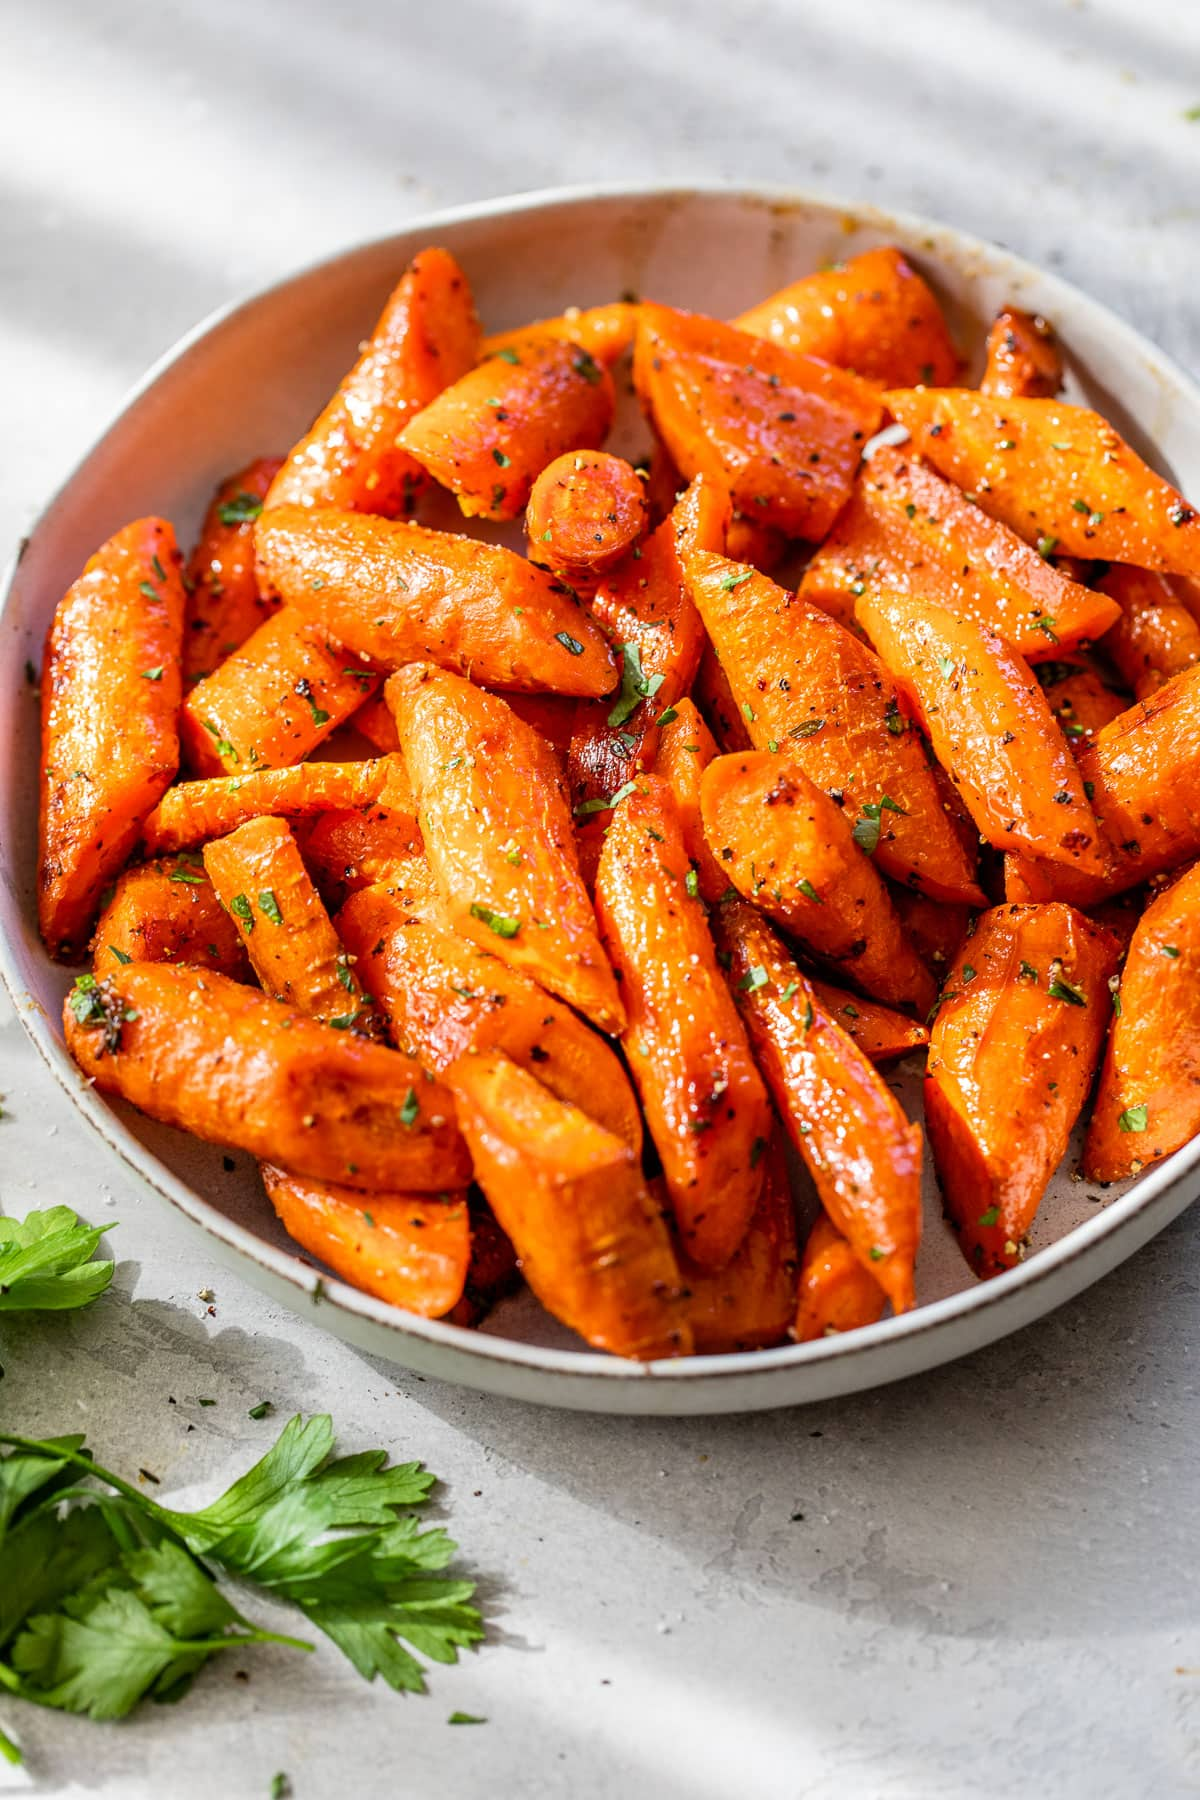 roasted carrots with herbs in a bowl